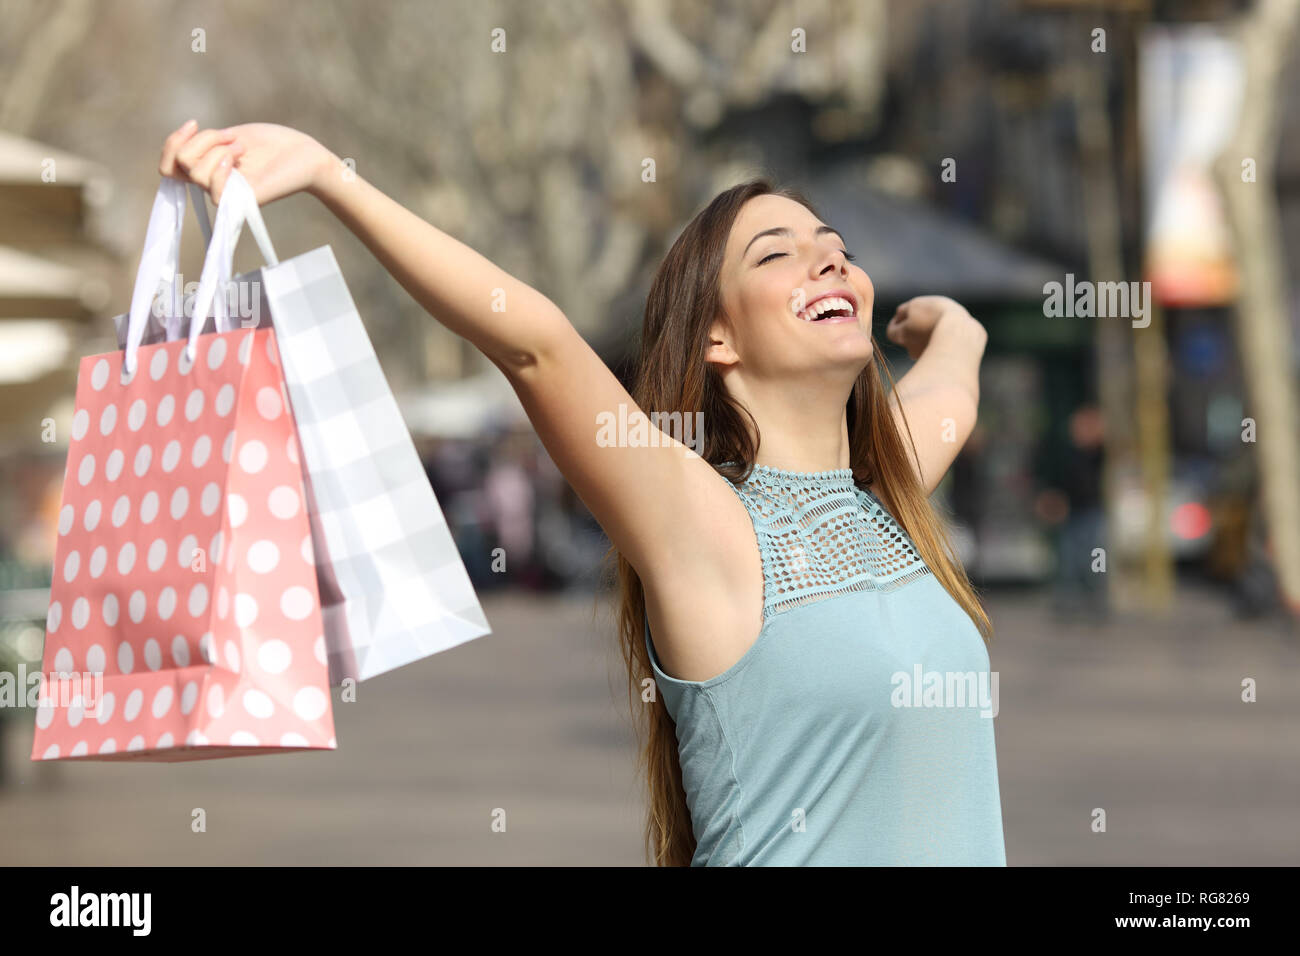 Happy shopper holding shopping bags raising arms in a street - Stock Image